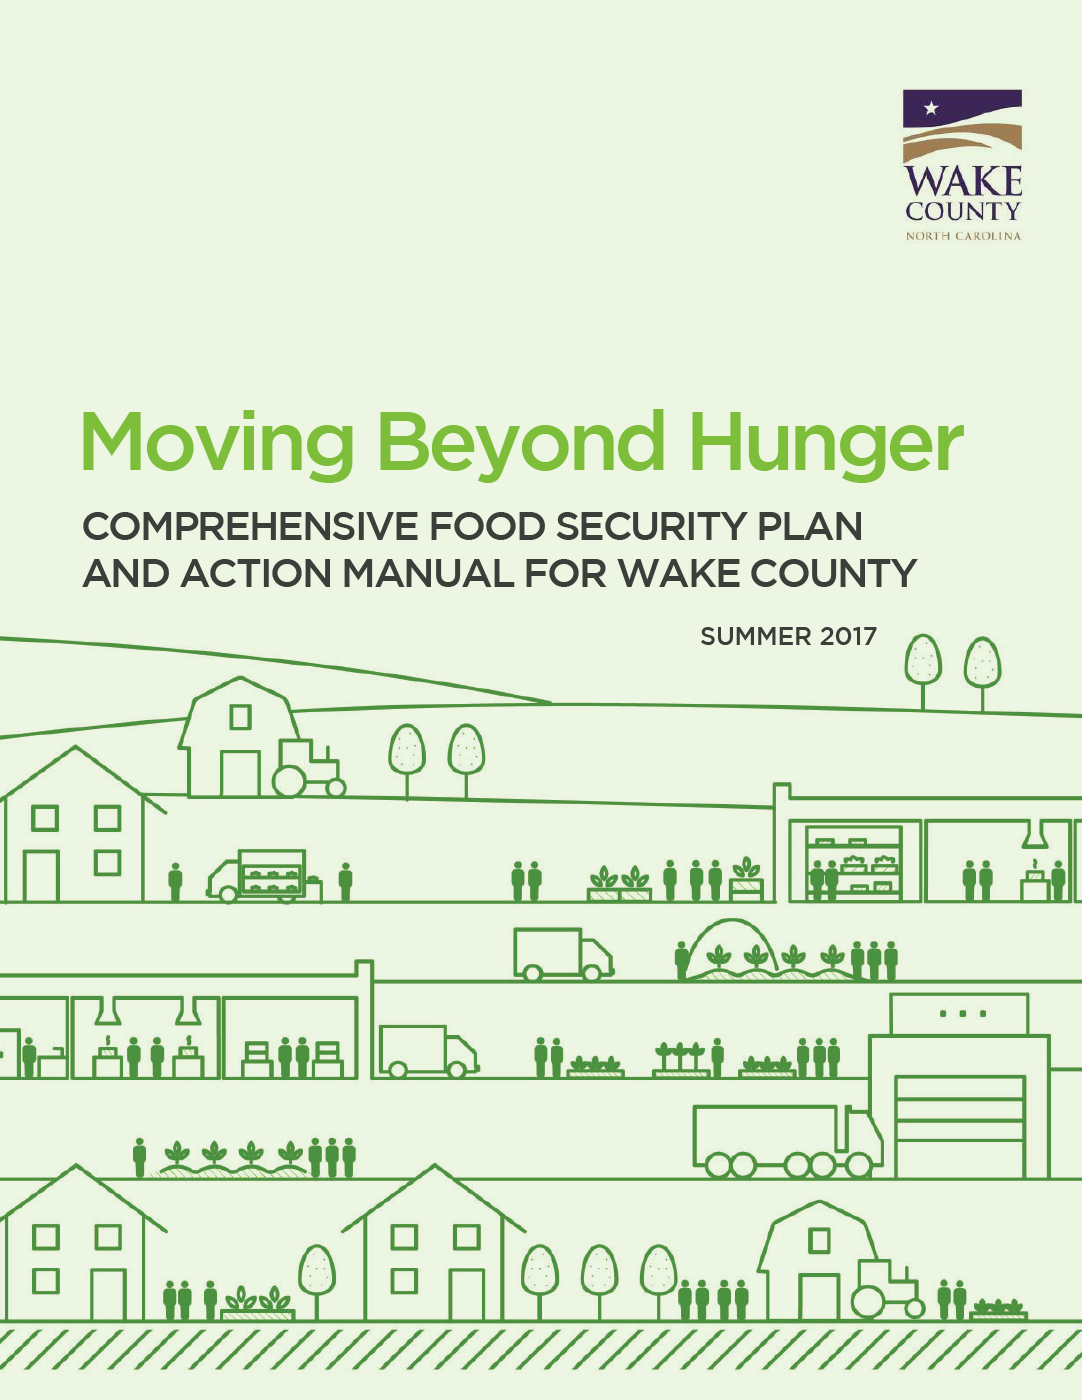 Wake County Comprehensive Food Security Plan